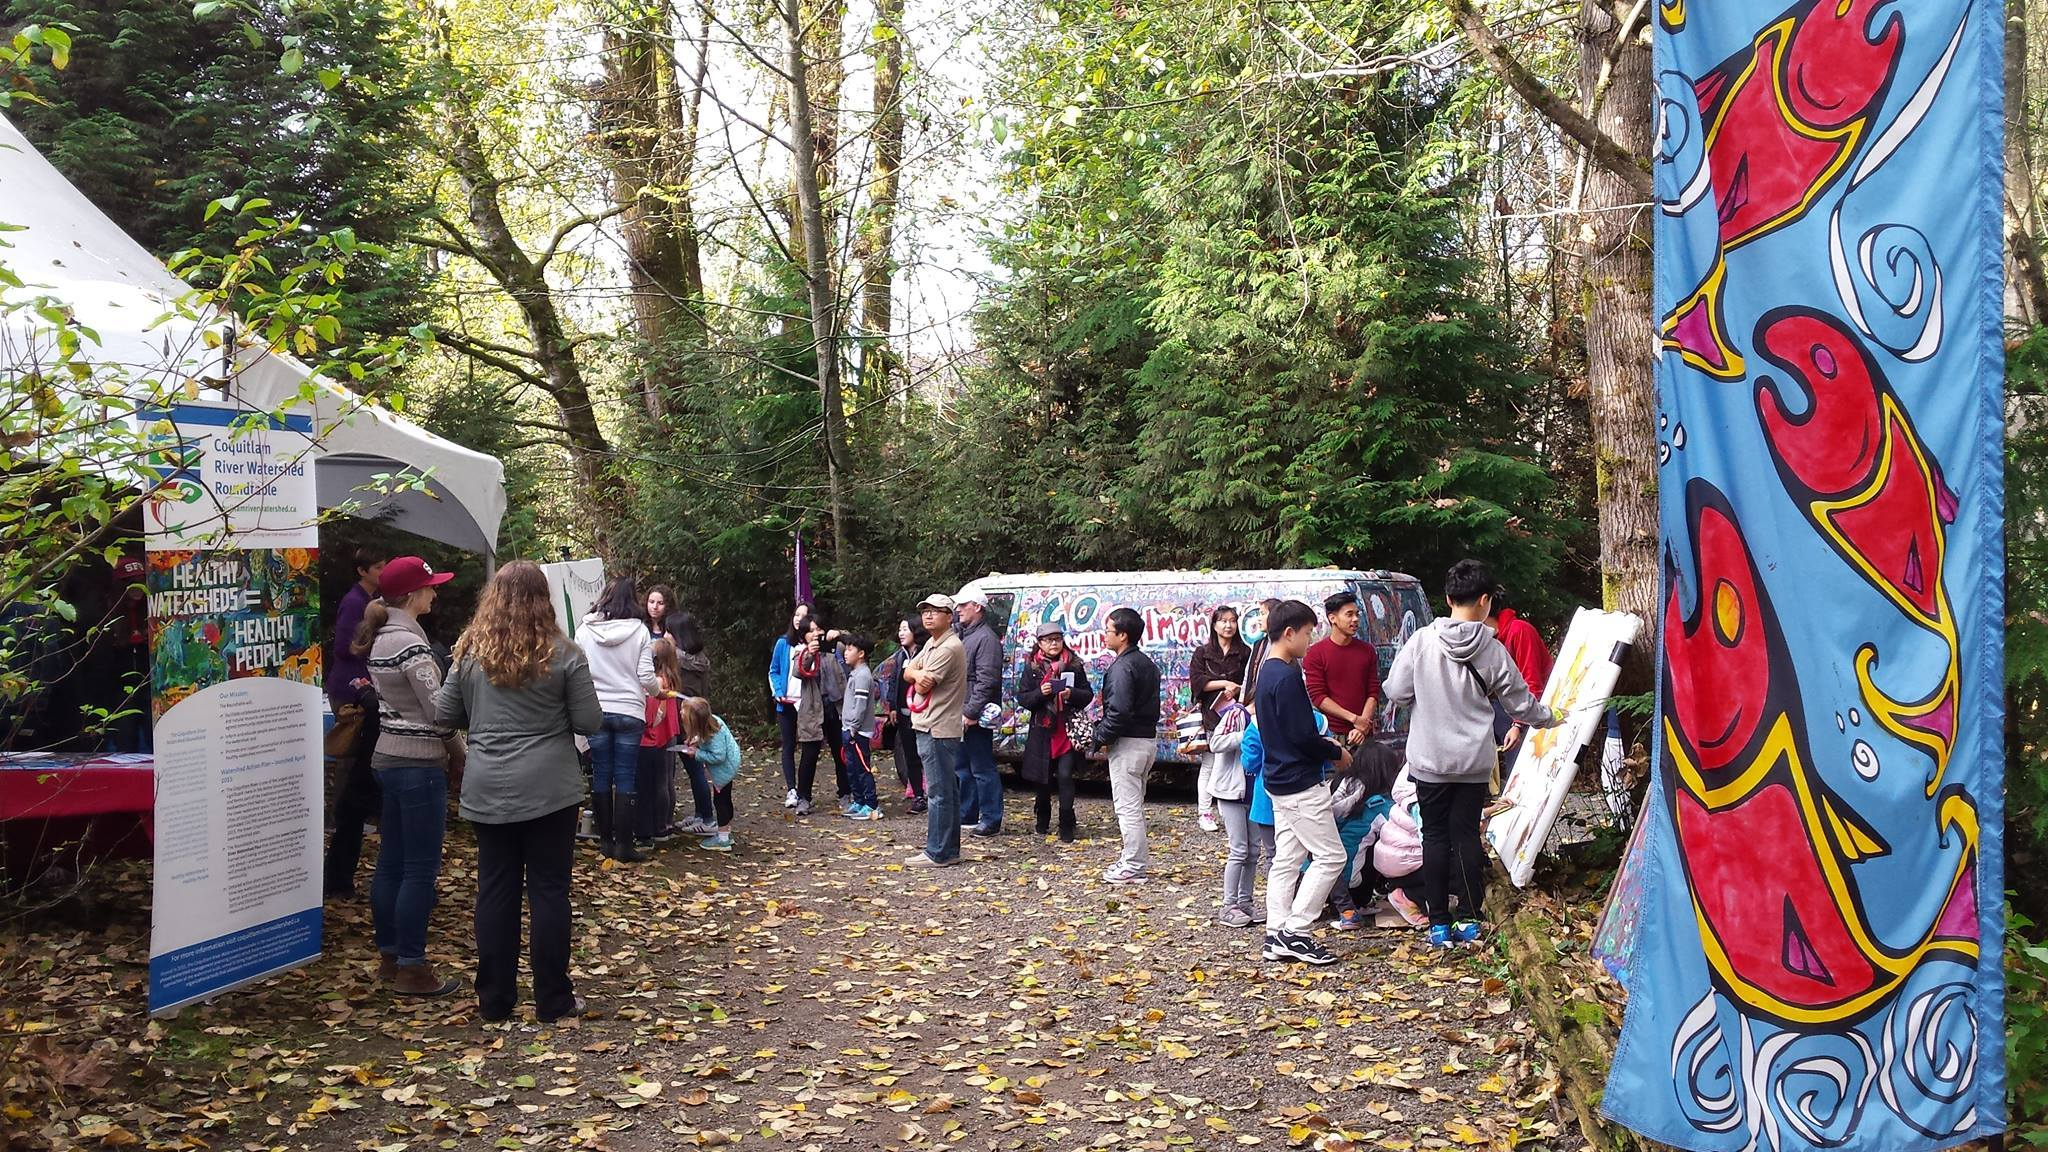 Approximately 2200 came through to enjoy SALMON COME HOME at Hoy Creek Hatchery on Hoy Trail